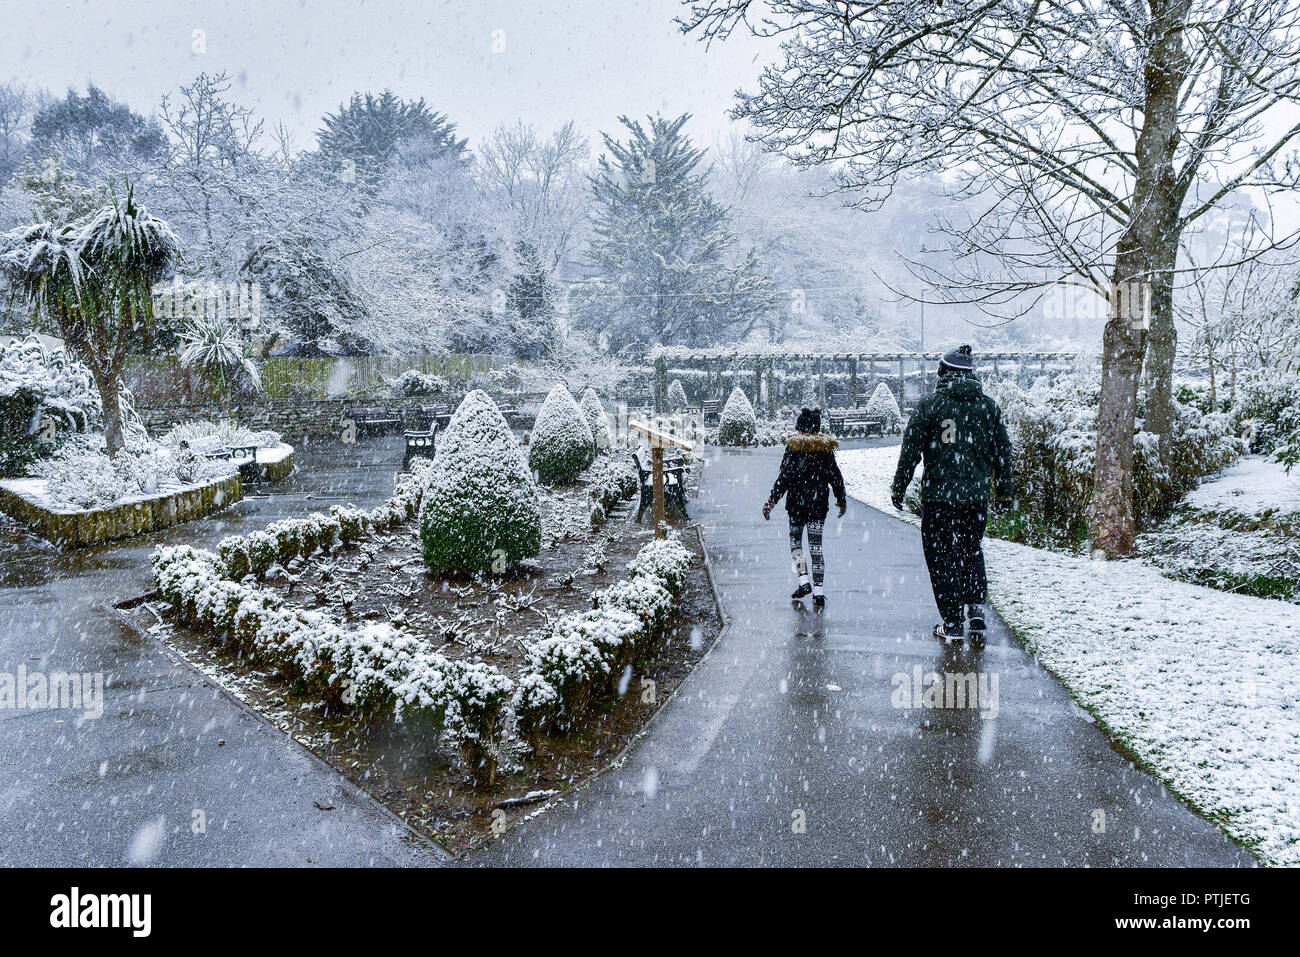 People walking through a heavy snowfall in Trenance Park at Newquay in Cornwall. - Stock Image